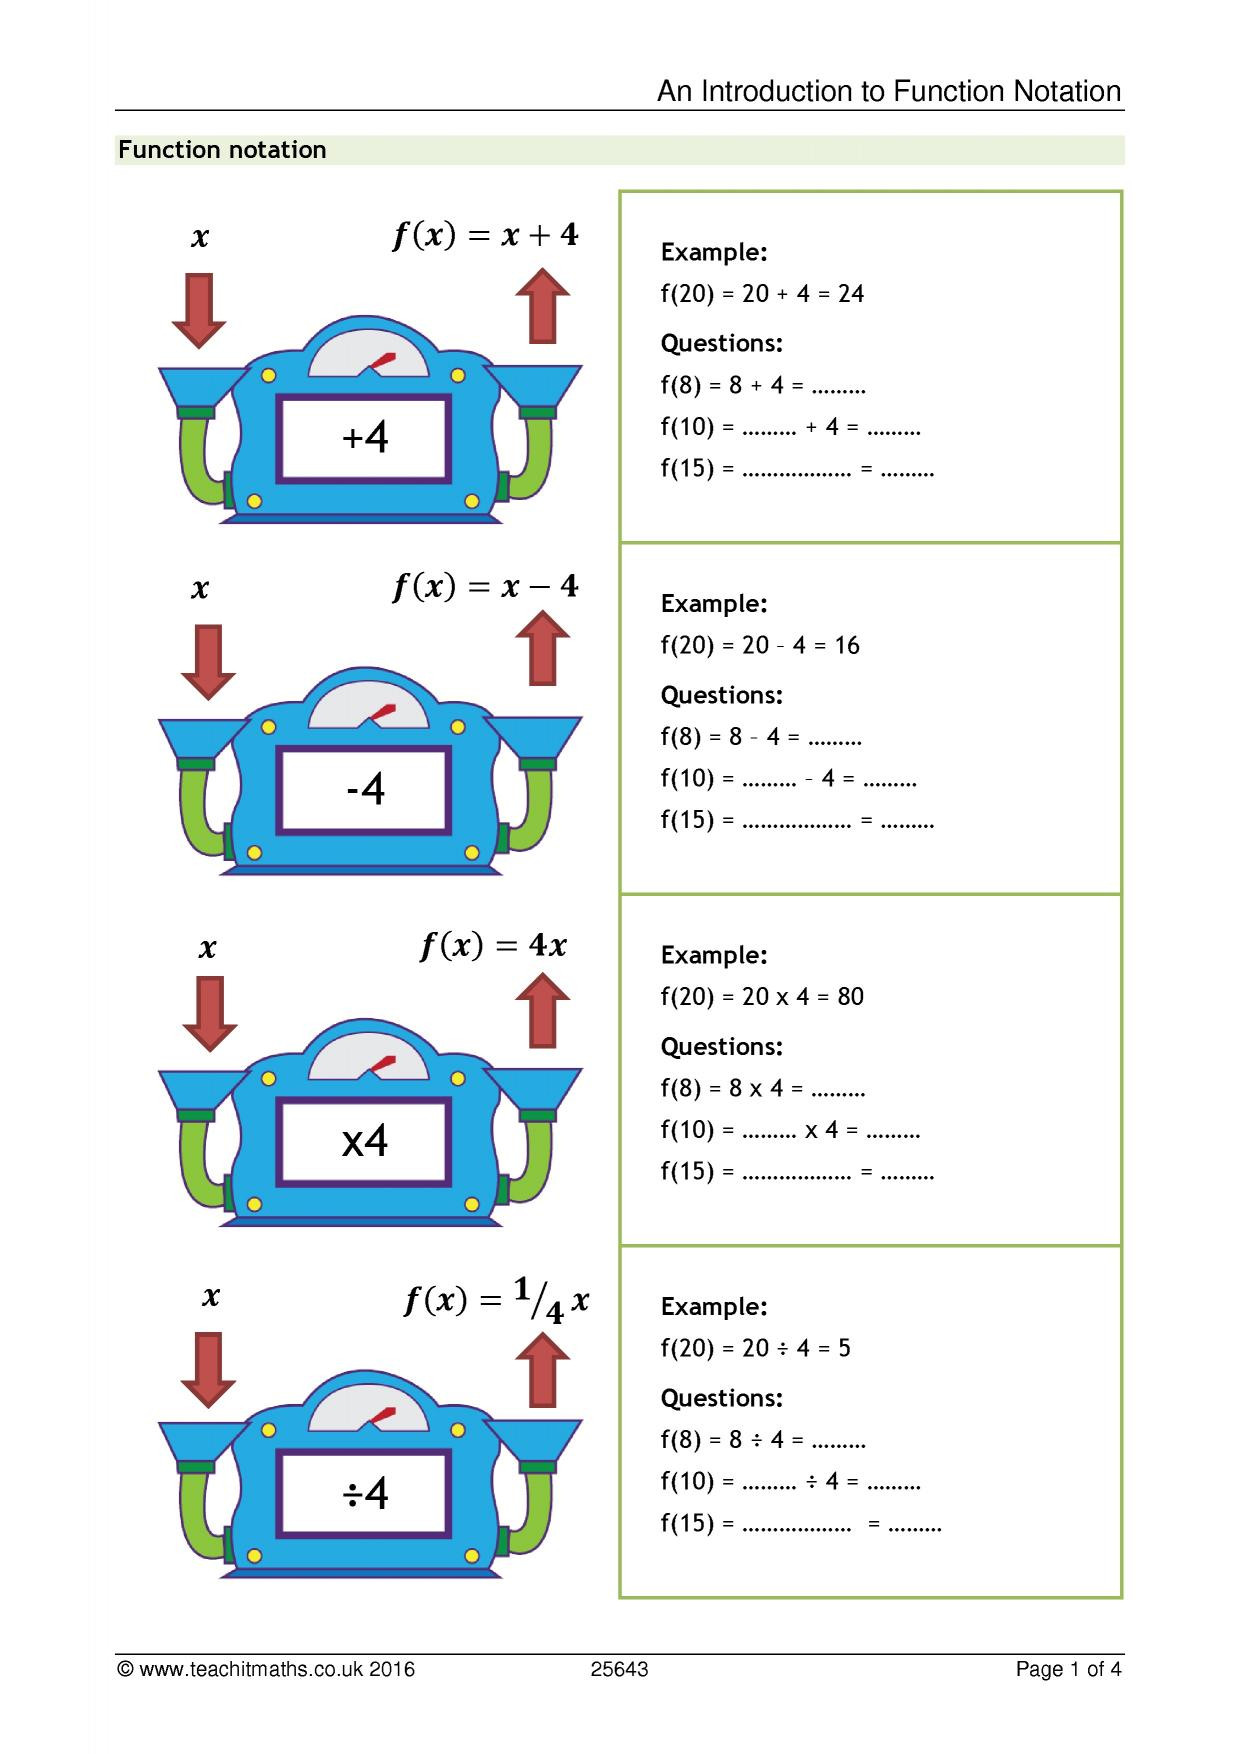 Algebra 1 Function Notation Worksheet An Introduction to Function Notation